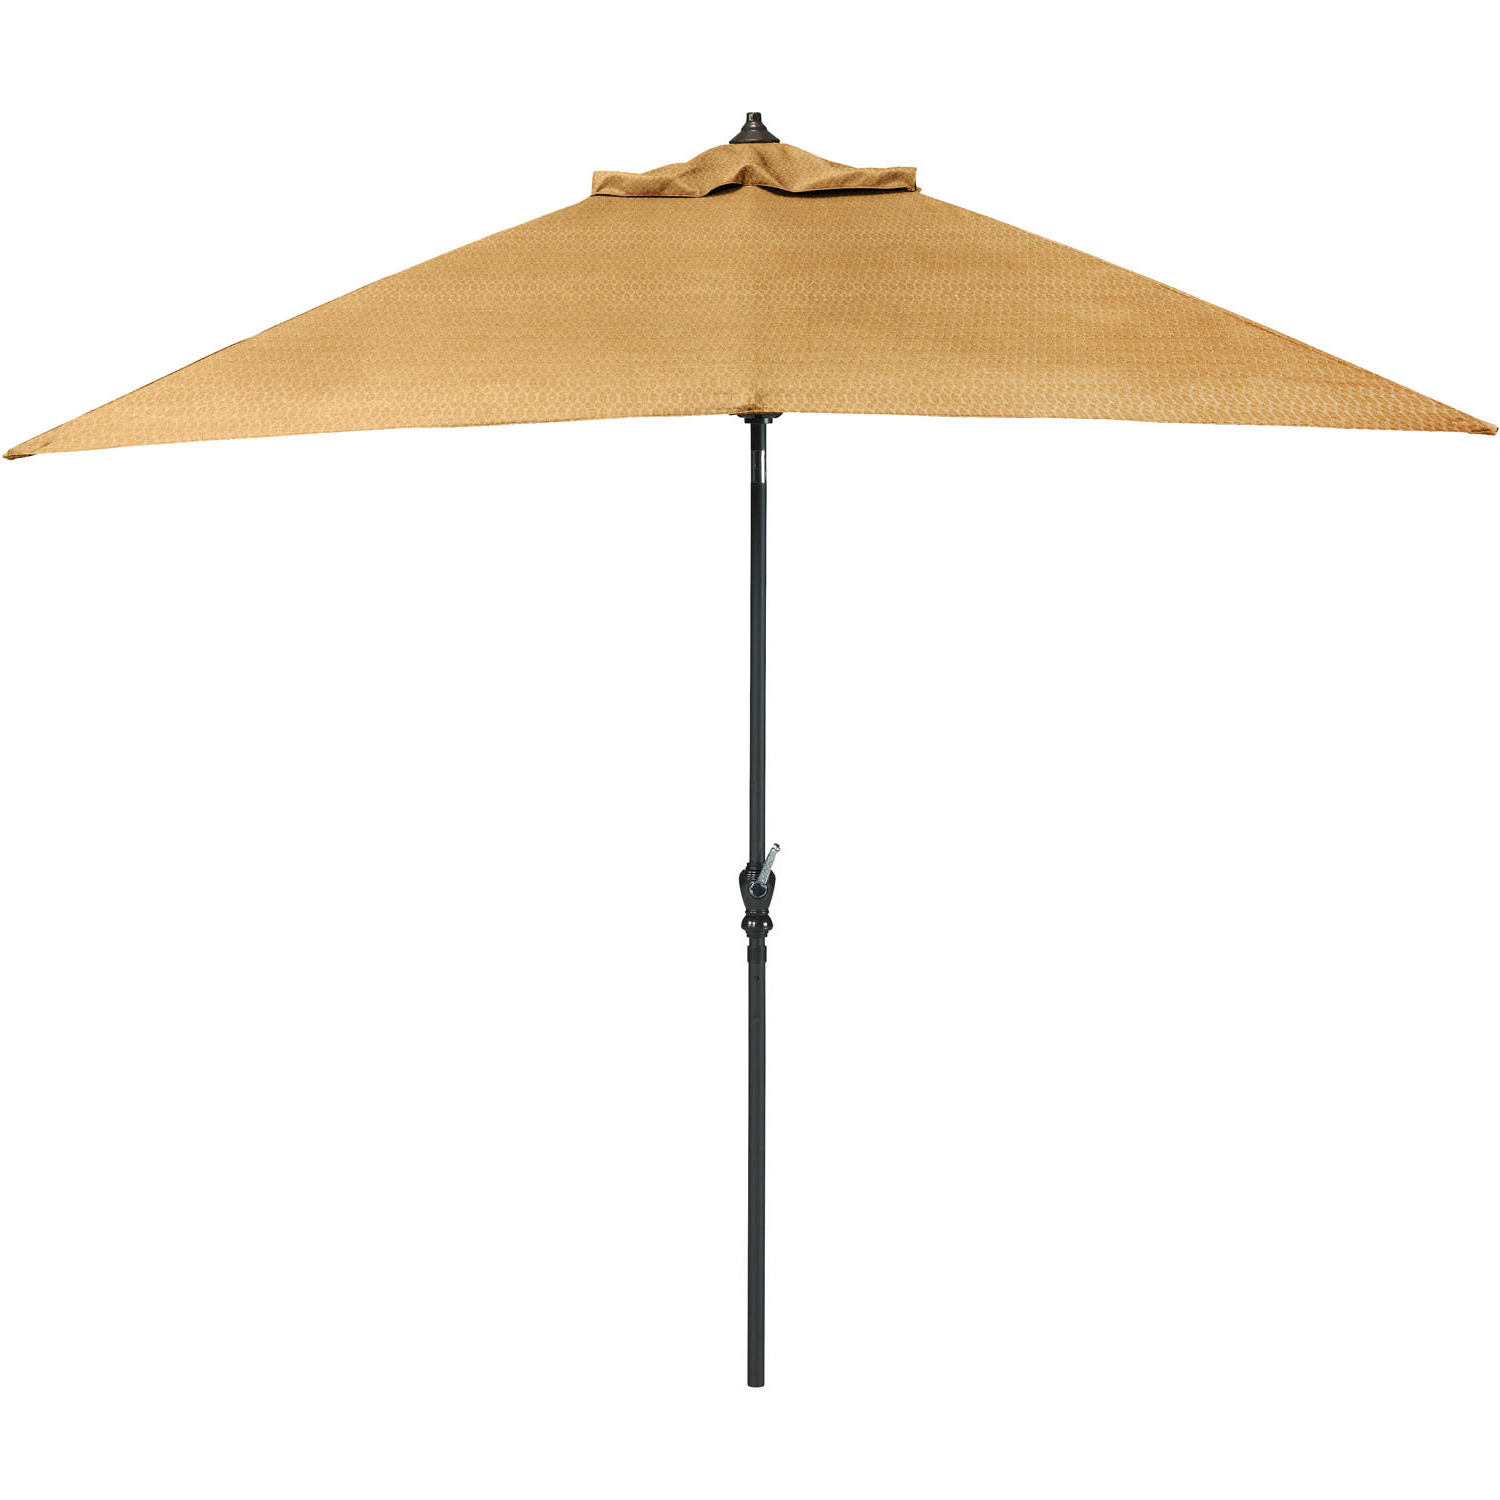 Sweeten 9' Market Umbrella With Current Sheehan Market Umbrellas (View 13 of 20)